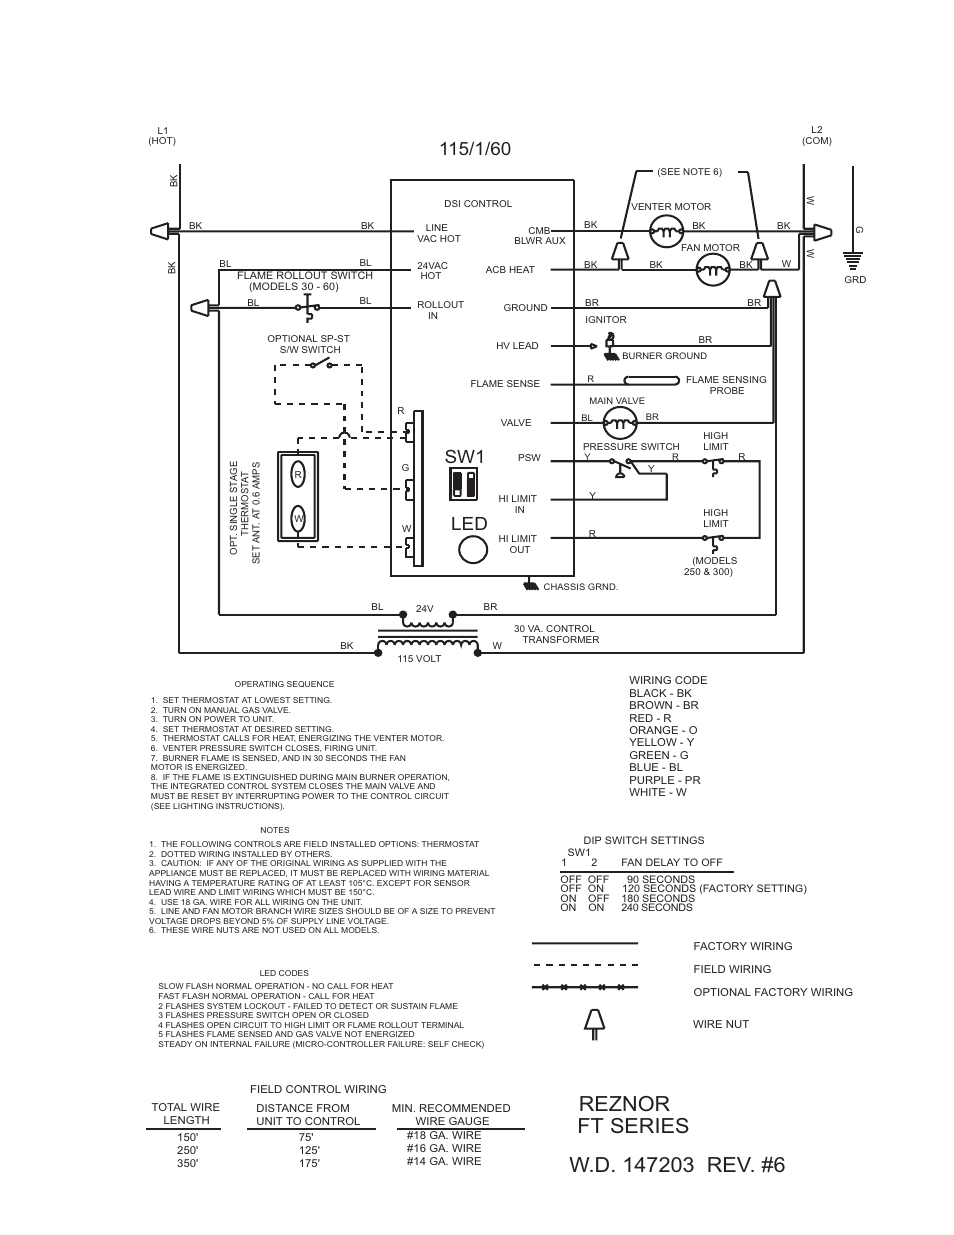 typical wiring diagram ft series reznor reznor ft unit. Black Bedroom Furniture Sets. Home Design Ideas